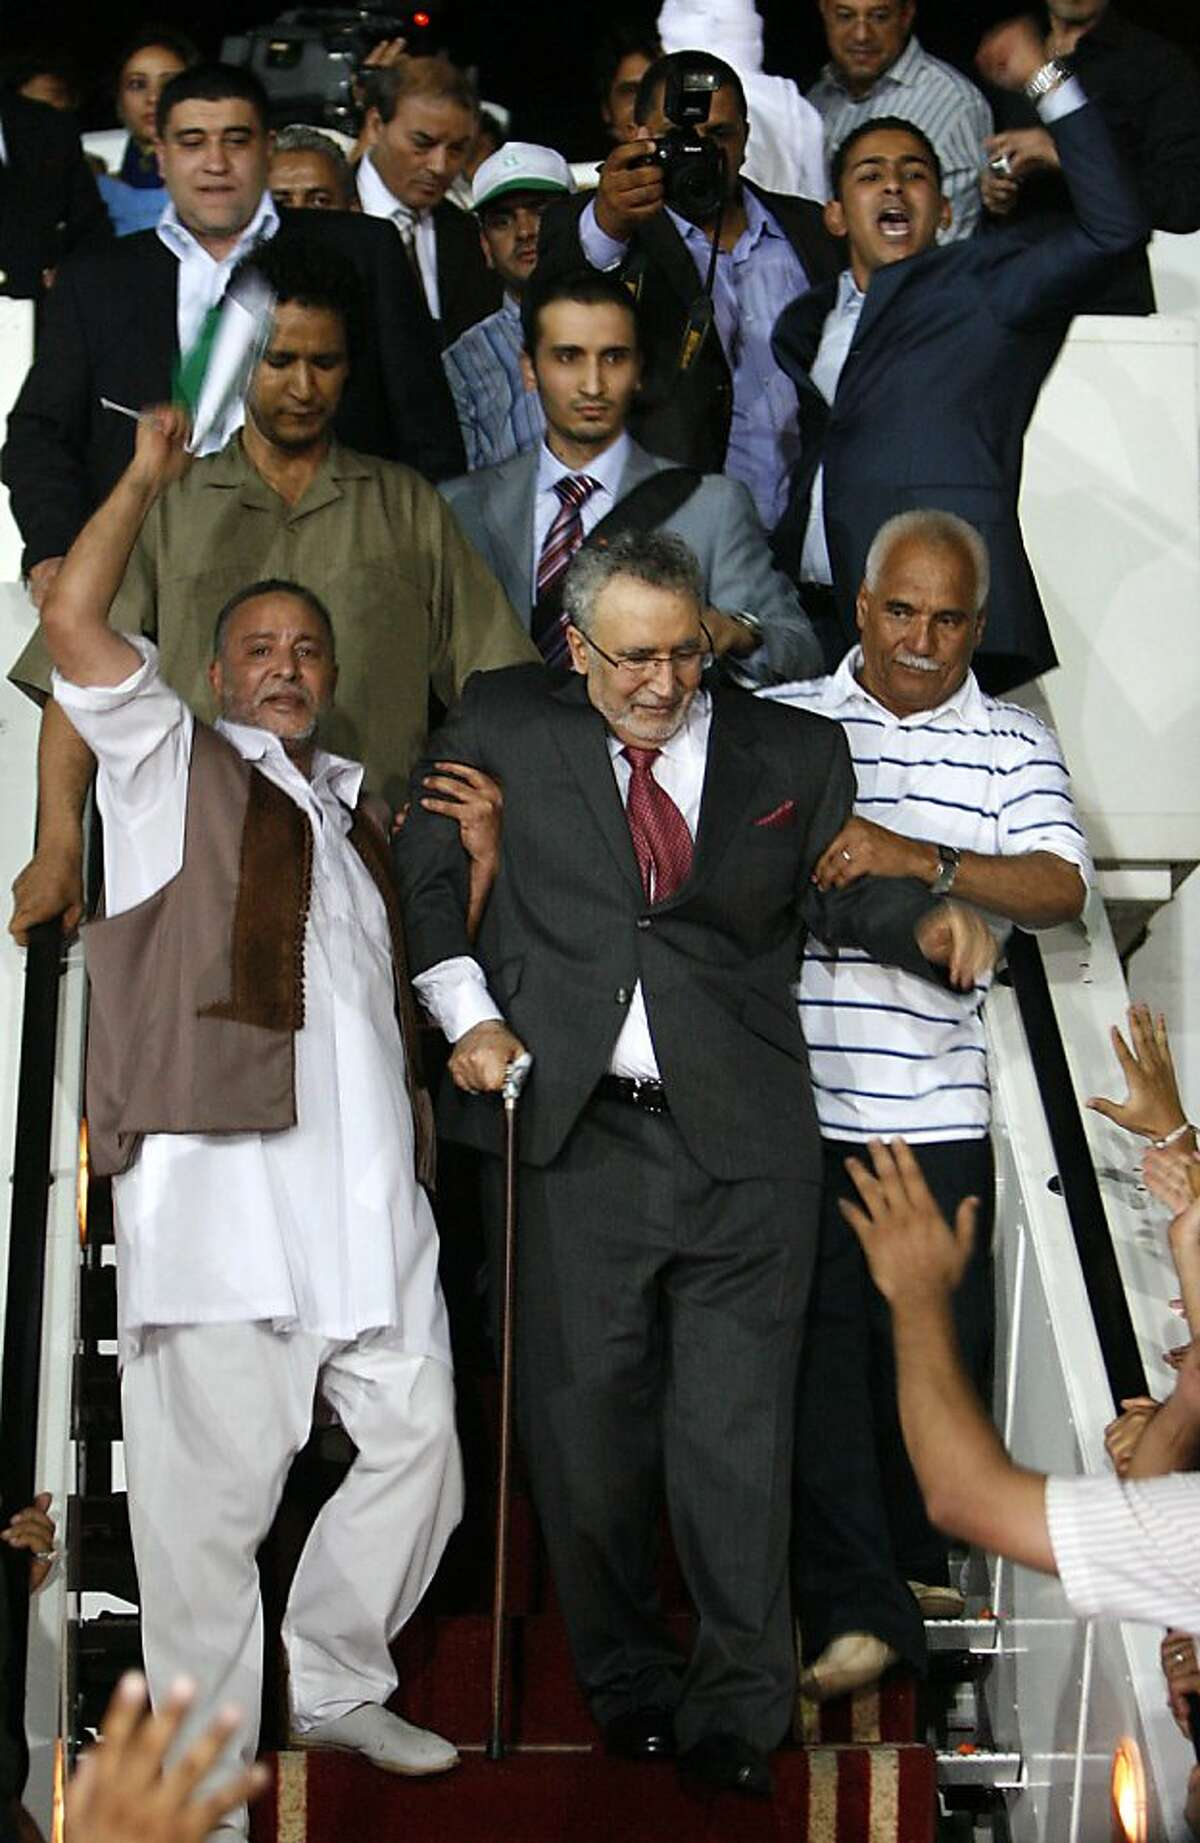 A handout picture obtained from Oya newspaper shows Libyans greeting freed Lockerbie bomber Abdelbaset Ali Mohmet al-Megrahi (C), the sole Libyan convicted over the 1988 Pan Am jetliner bombing, upon his arrival in Tripoli late on August 20, 2009. A hero's welcome given to the Lockerbie bomber in Libya sparked fury on August 21 in the United States and Britain which both warned Tripoli of serious diplomatic repercussions. AFP PHOTO/OYA NEWSPAPER/HO == RESTRICTED TO EDITORIAL USE == (Photo credit should read -/AFP/Getty Images) Ran on: 08-22-2009 Jubilant Libyans welcome convicted Lockerbie bomber Abdel Baset al-Megrahi home to Tripoli. Ran on: 07-16-2010 Abdel Basset Ali al-Megrahi, convicted for the 1988 airliner bombing over Scotland, received a hero's welcome when he returned to Libya in August.